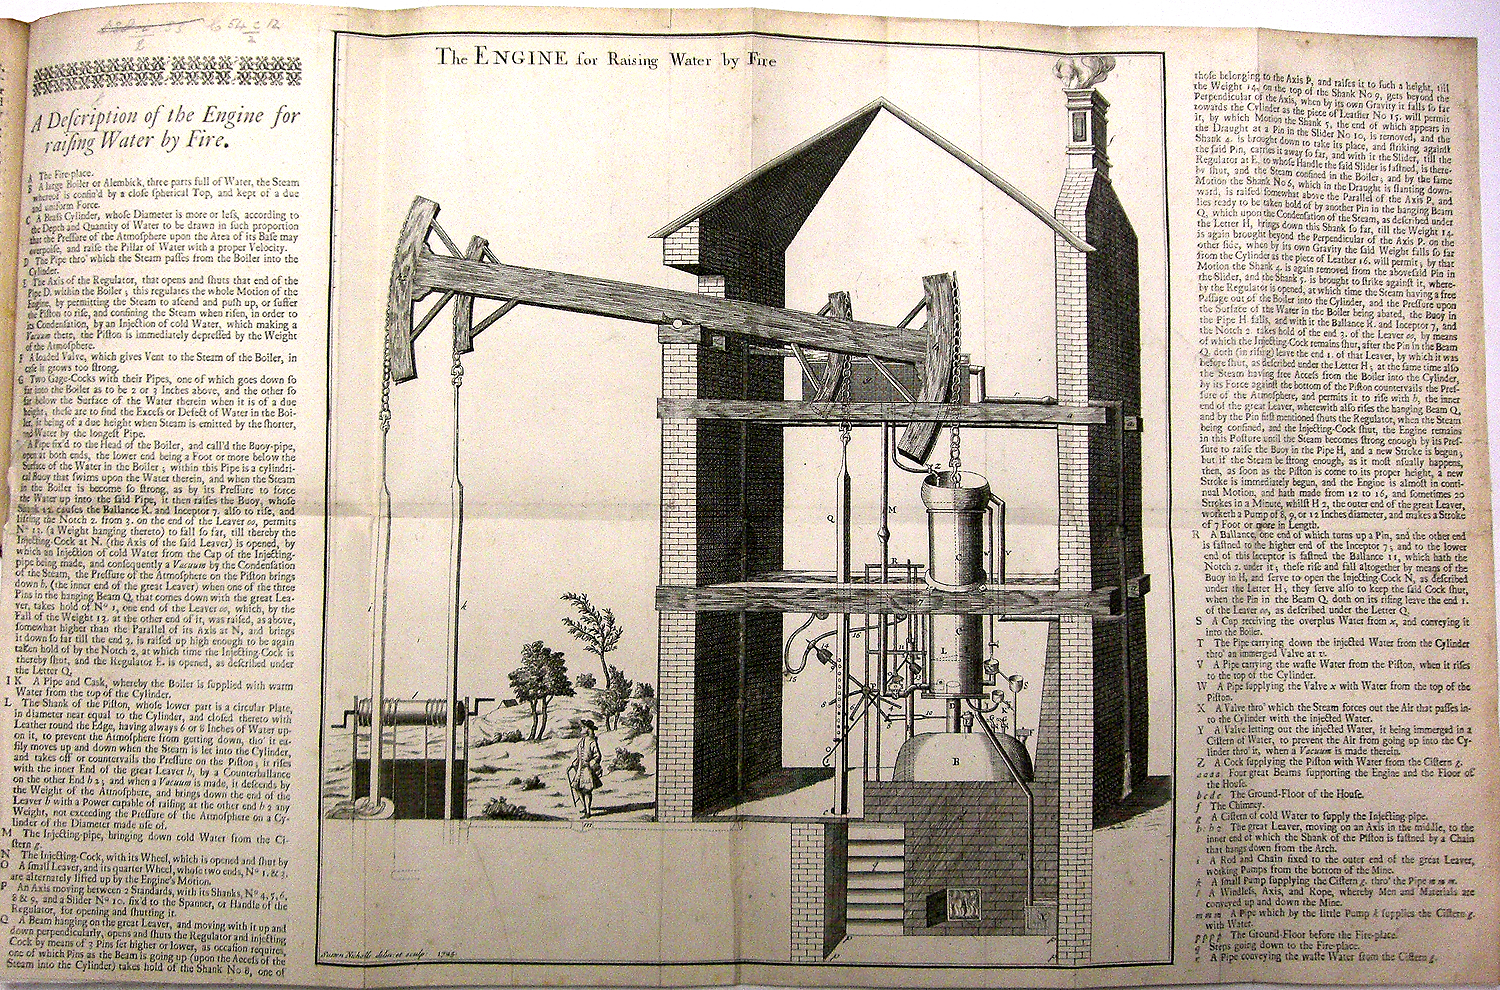 Early 18th century depiction of a steam engine